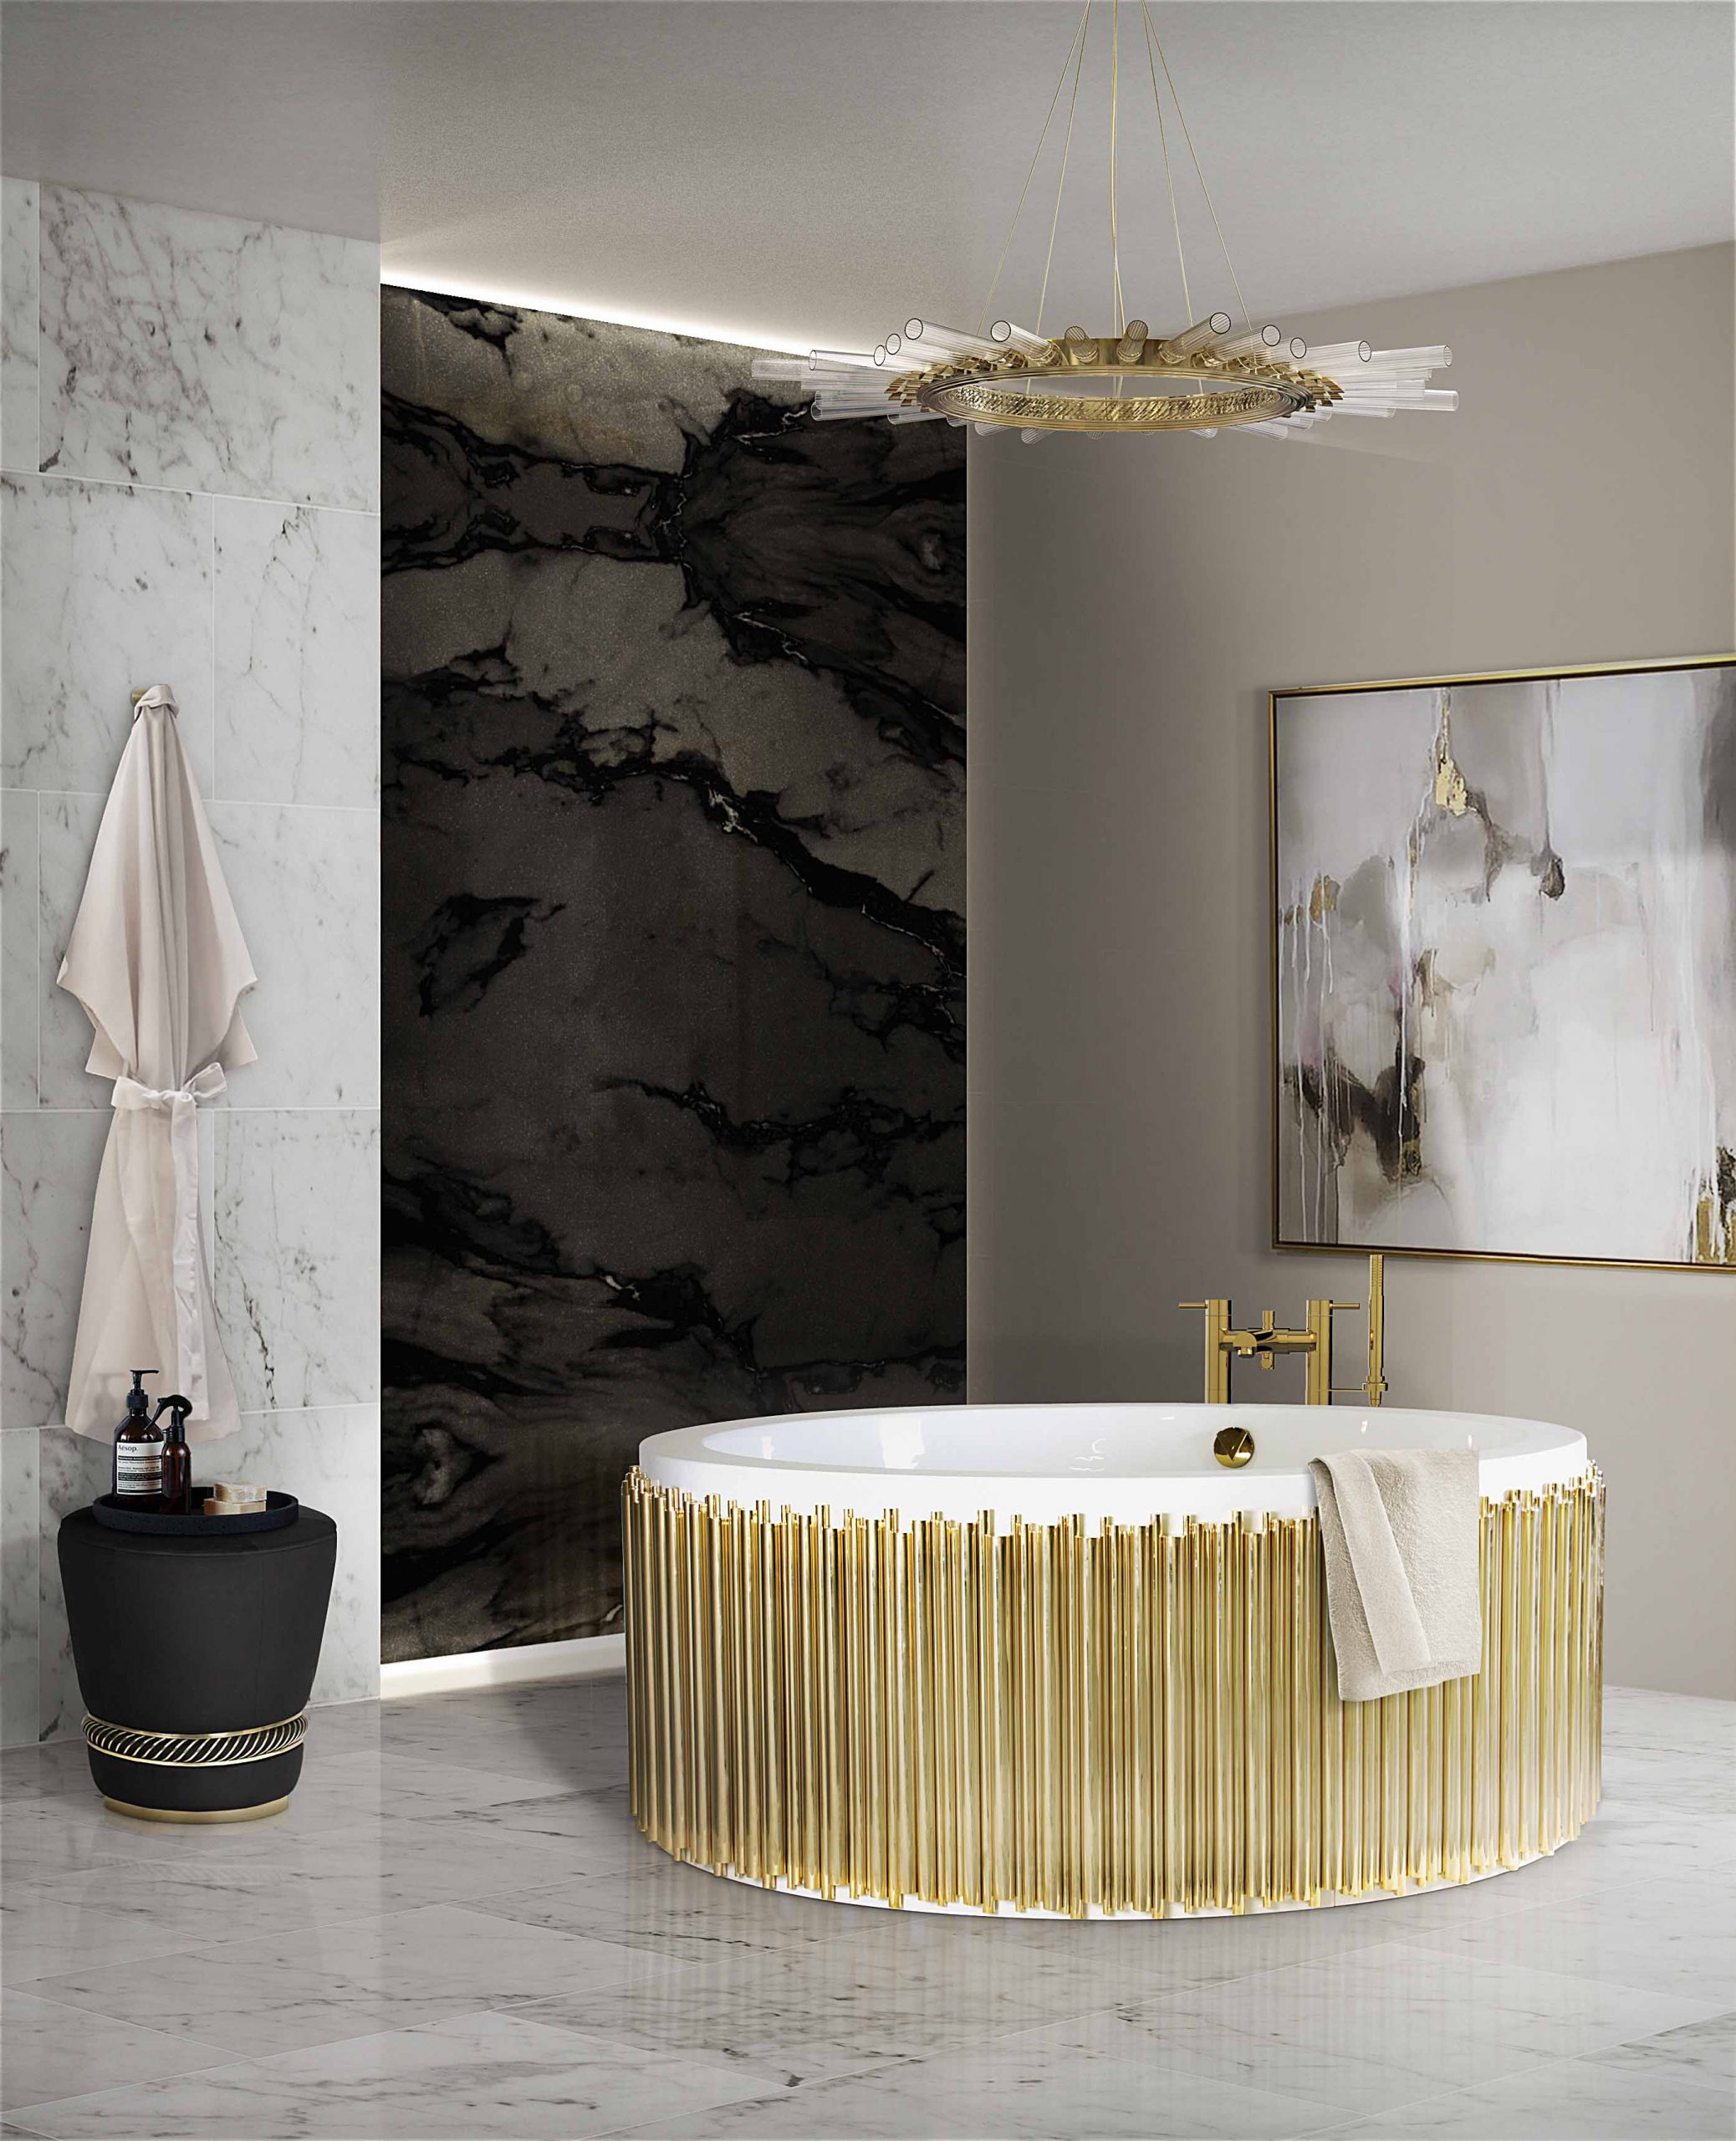 5 Lighting Design Trends for 2020 5 lighting design trends 5 Lighting Design Trends for 2020 27 symphony bathtub black paramount surface scaled